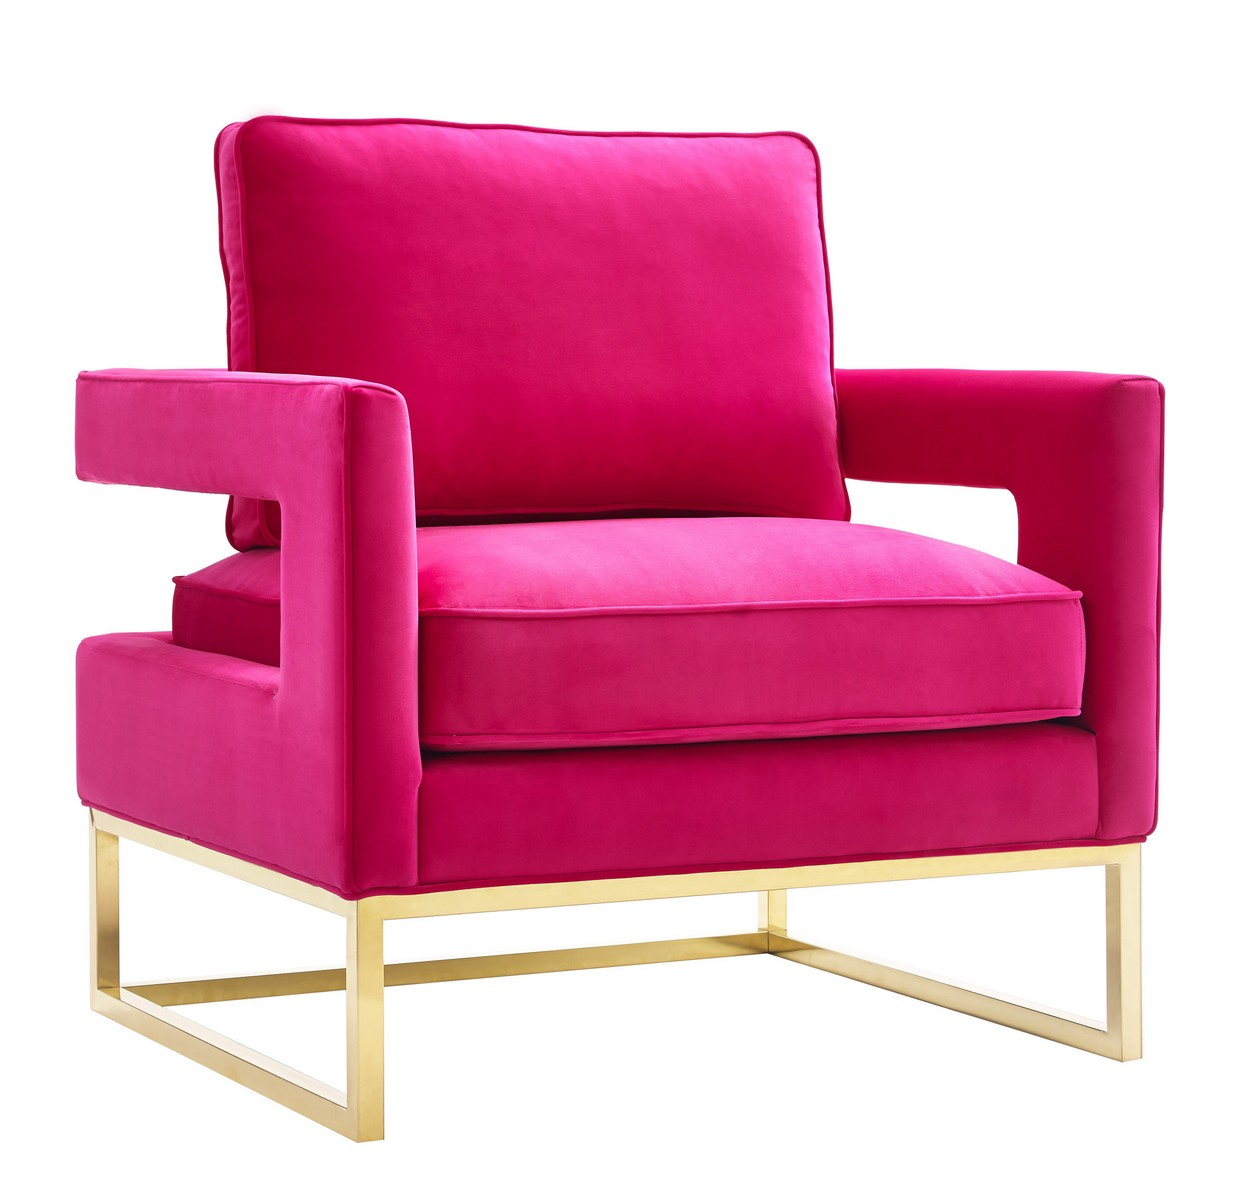 velvet armchair pink hanging chair bamboo tov furniture avery a120 at homelement